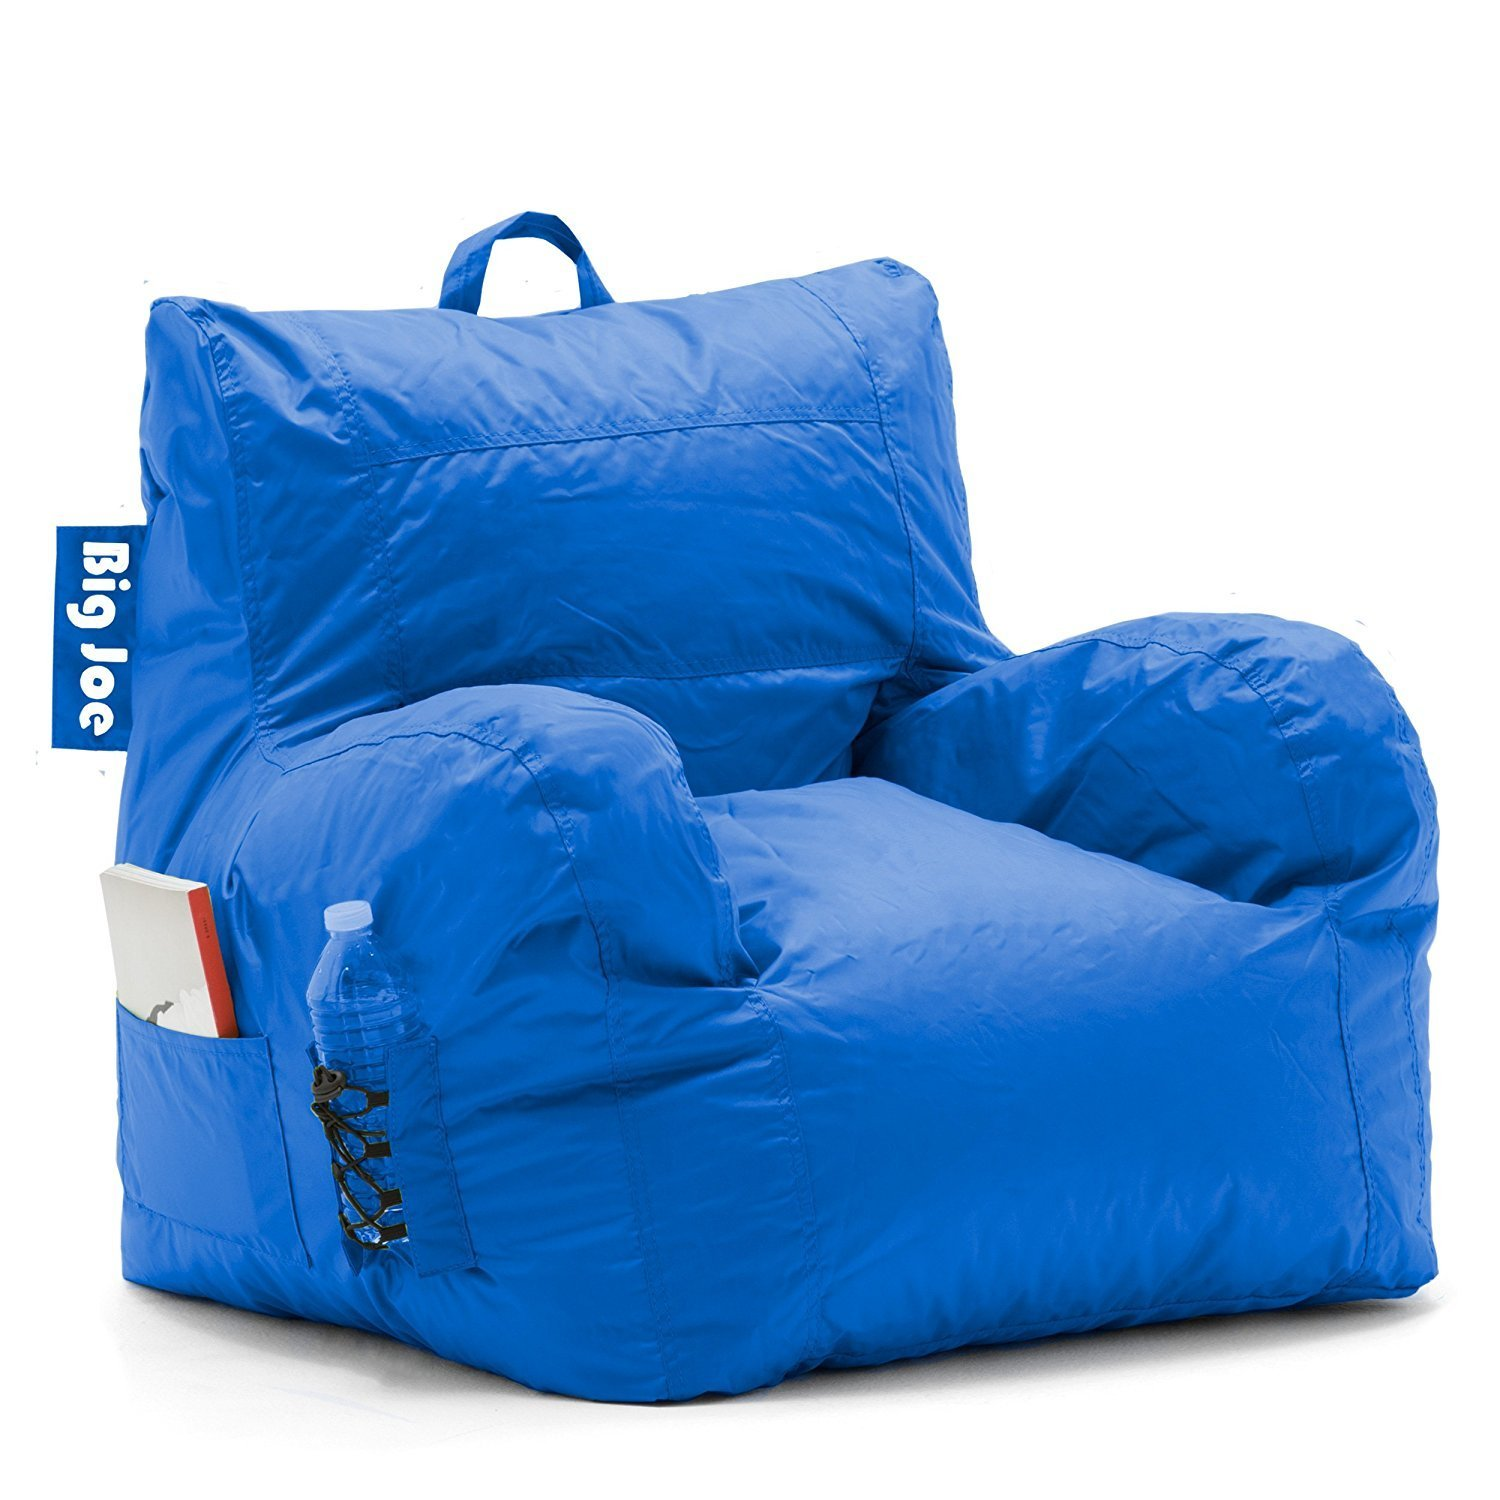 Big Joe Milano Chair Big Joe Dorm Bean Bag Chair Home Furniture Design